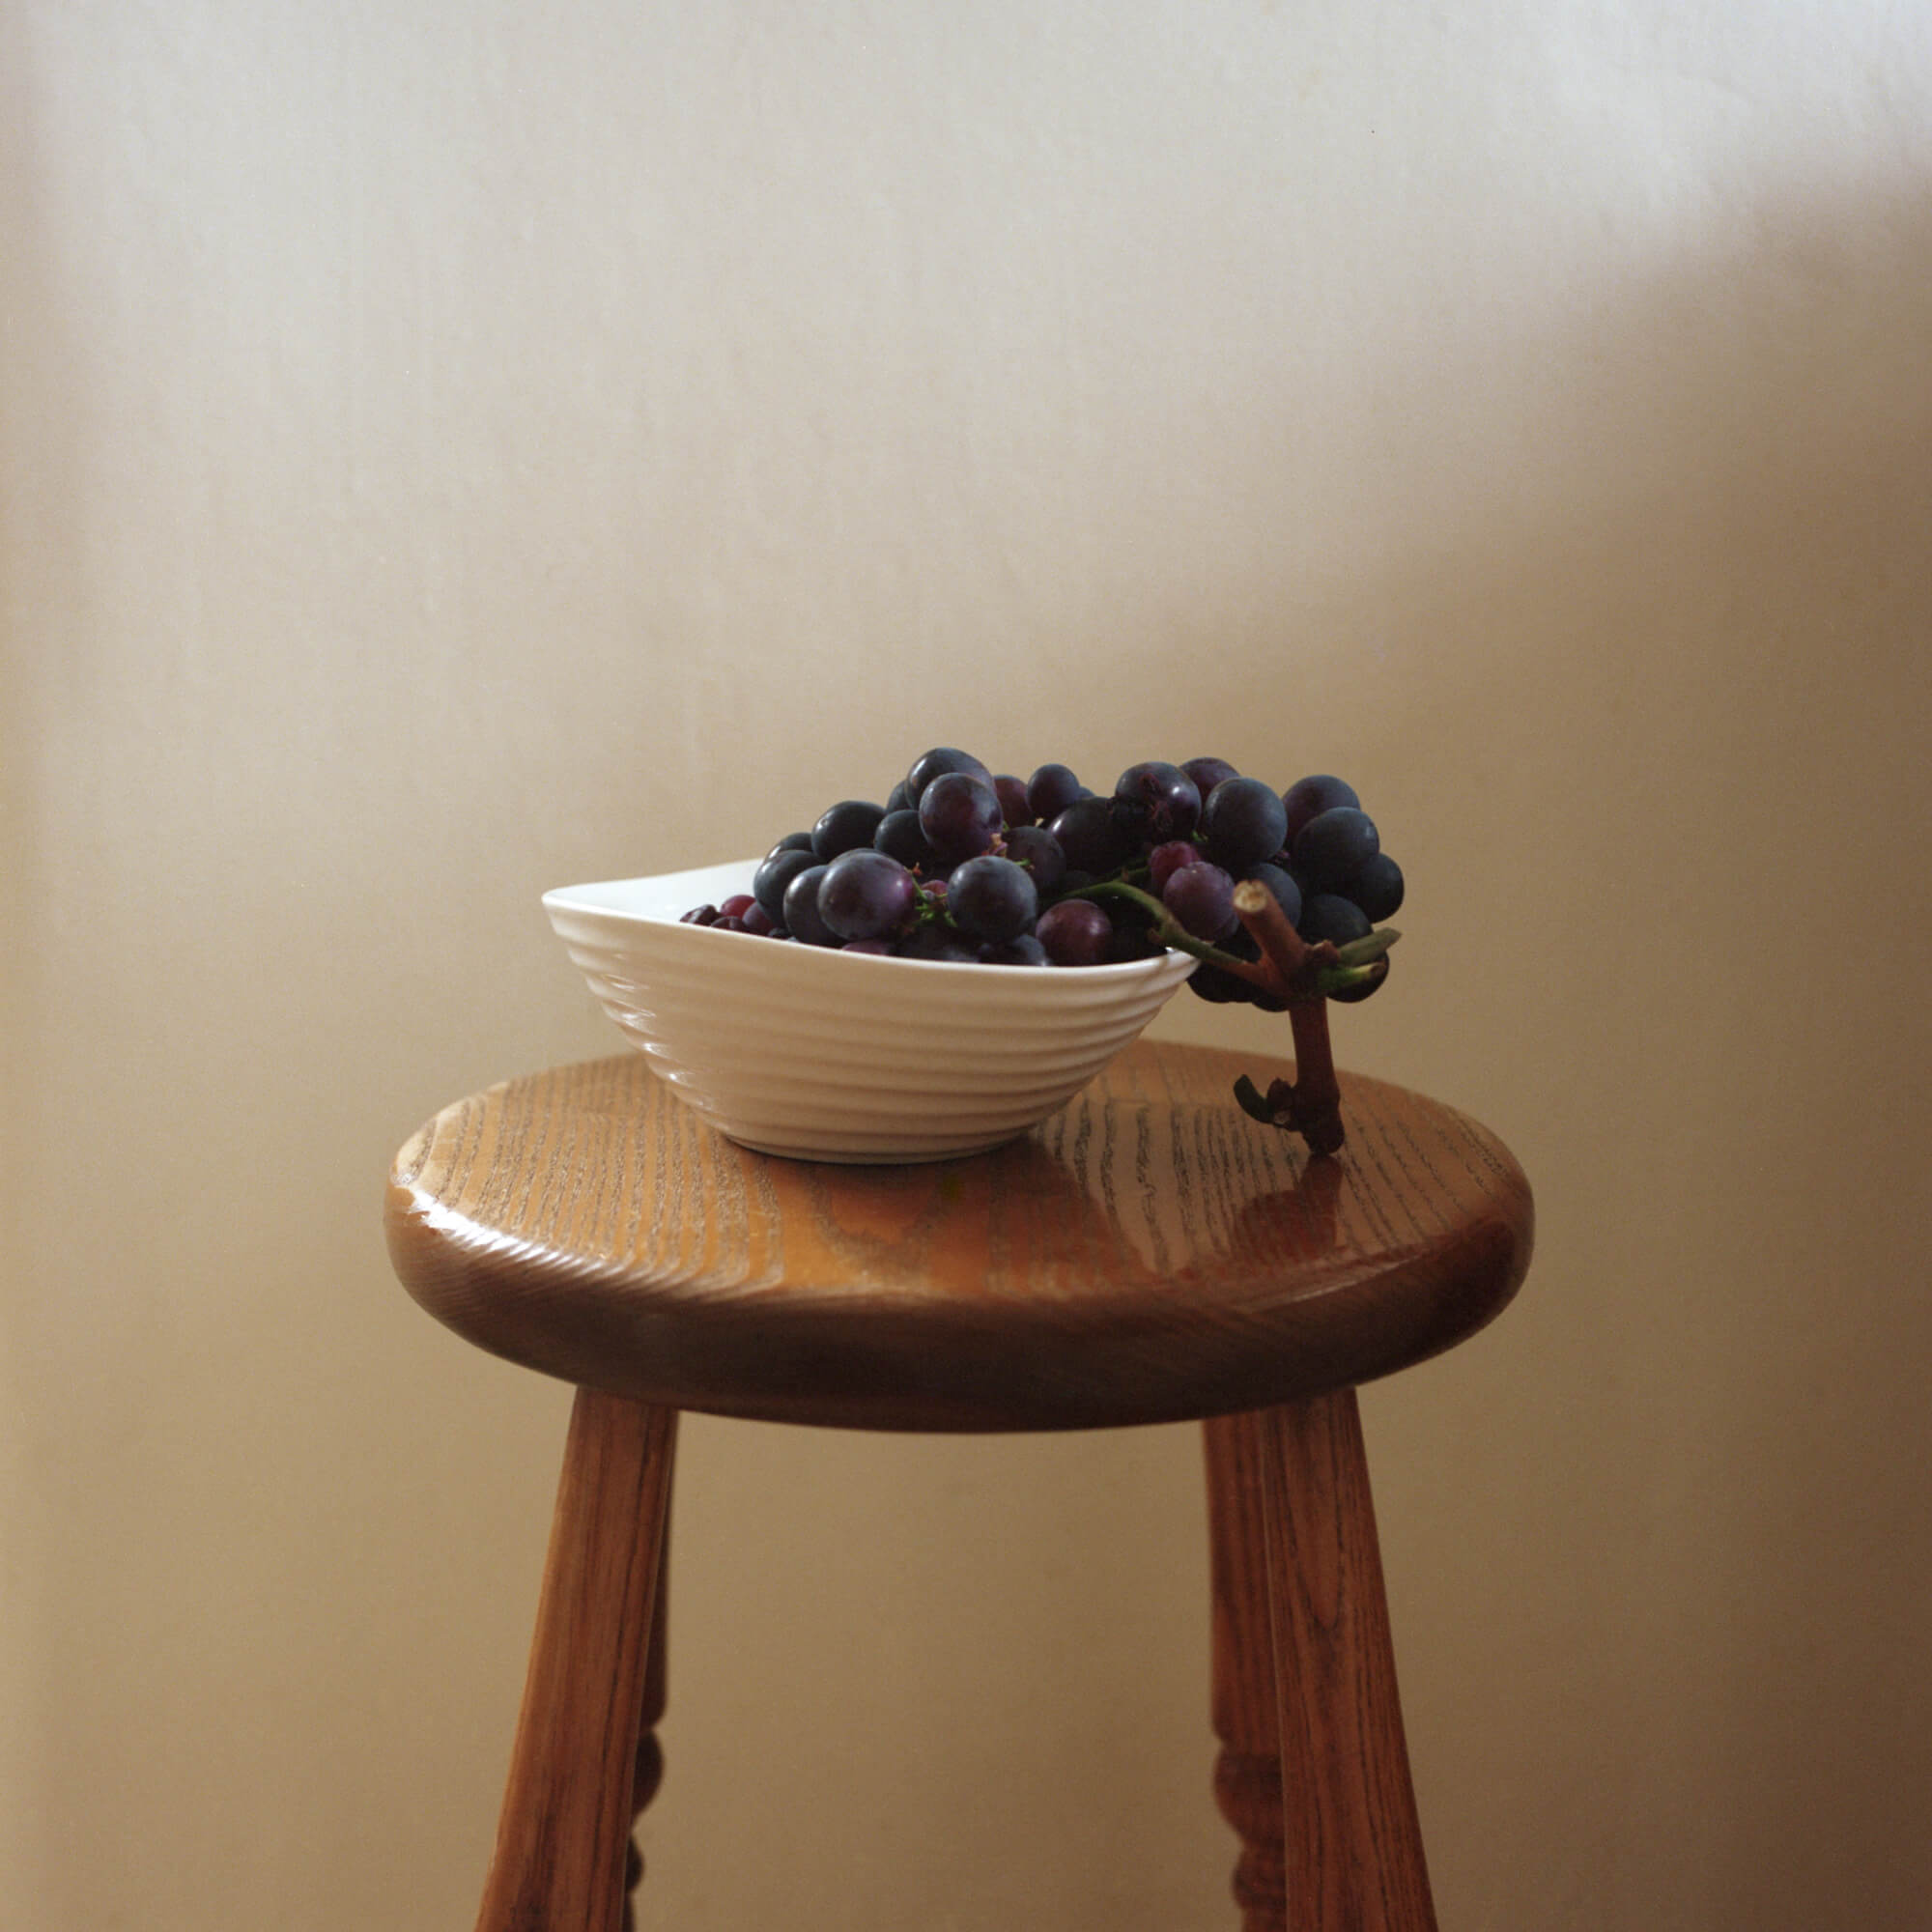 Phoebe Somerfield - Grapefruit Boulevard the south west collective of photography still life photo of a fruit bowl